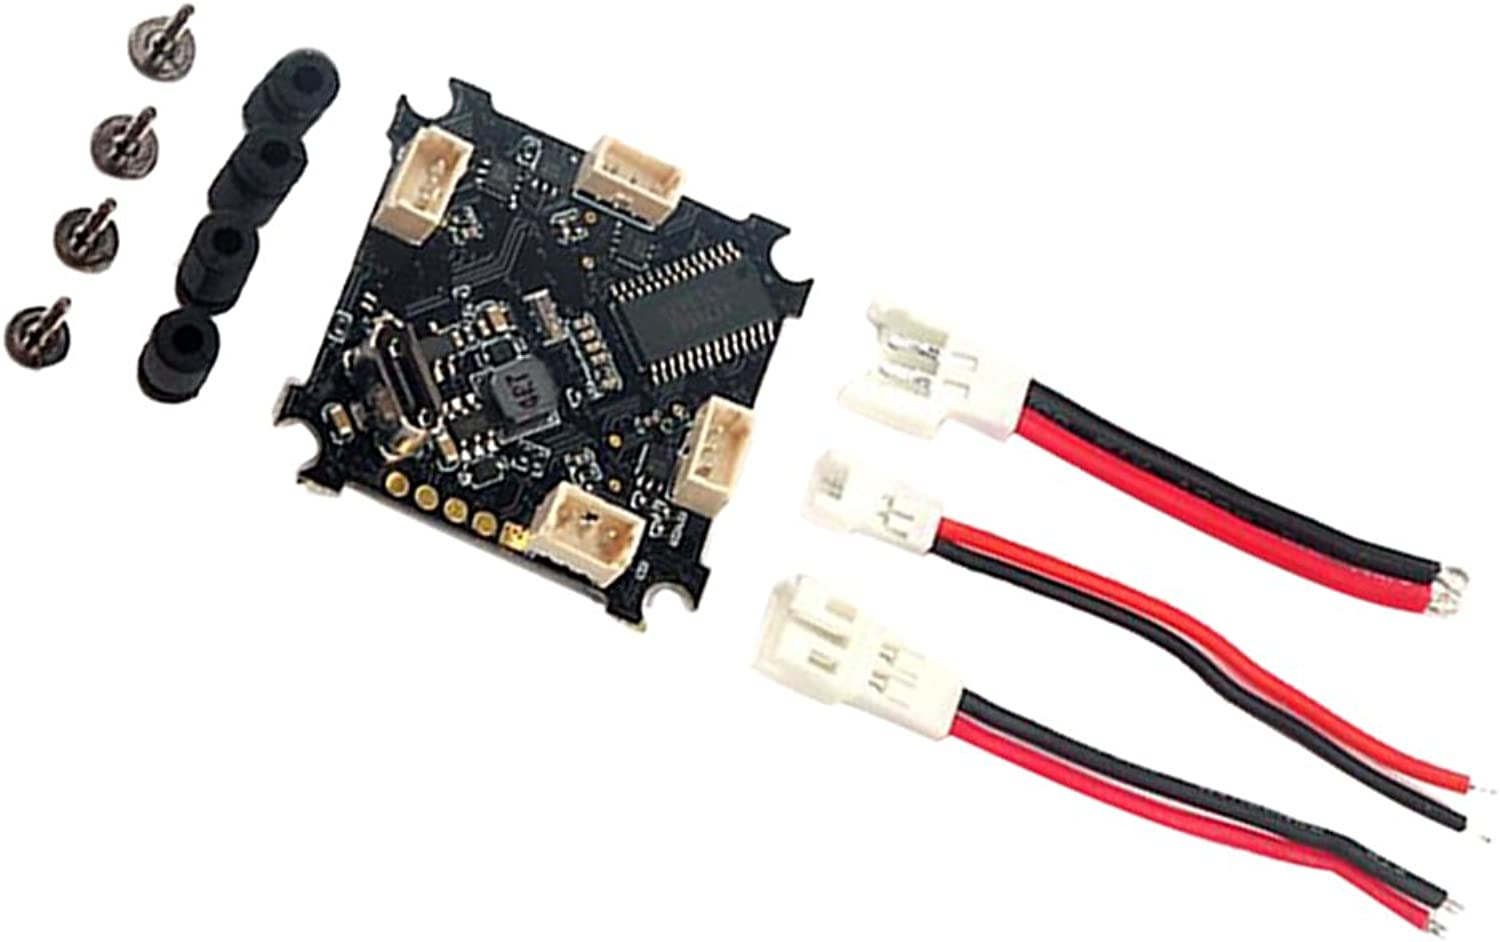 Fityle Beecore_BL F3 1S Flight Controller with Dshot ESC for RC Racing Drone Quads